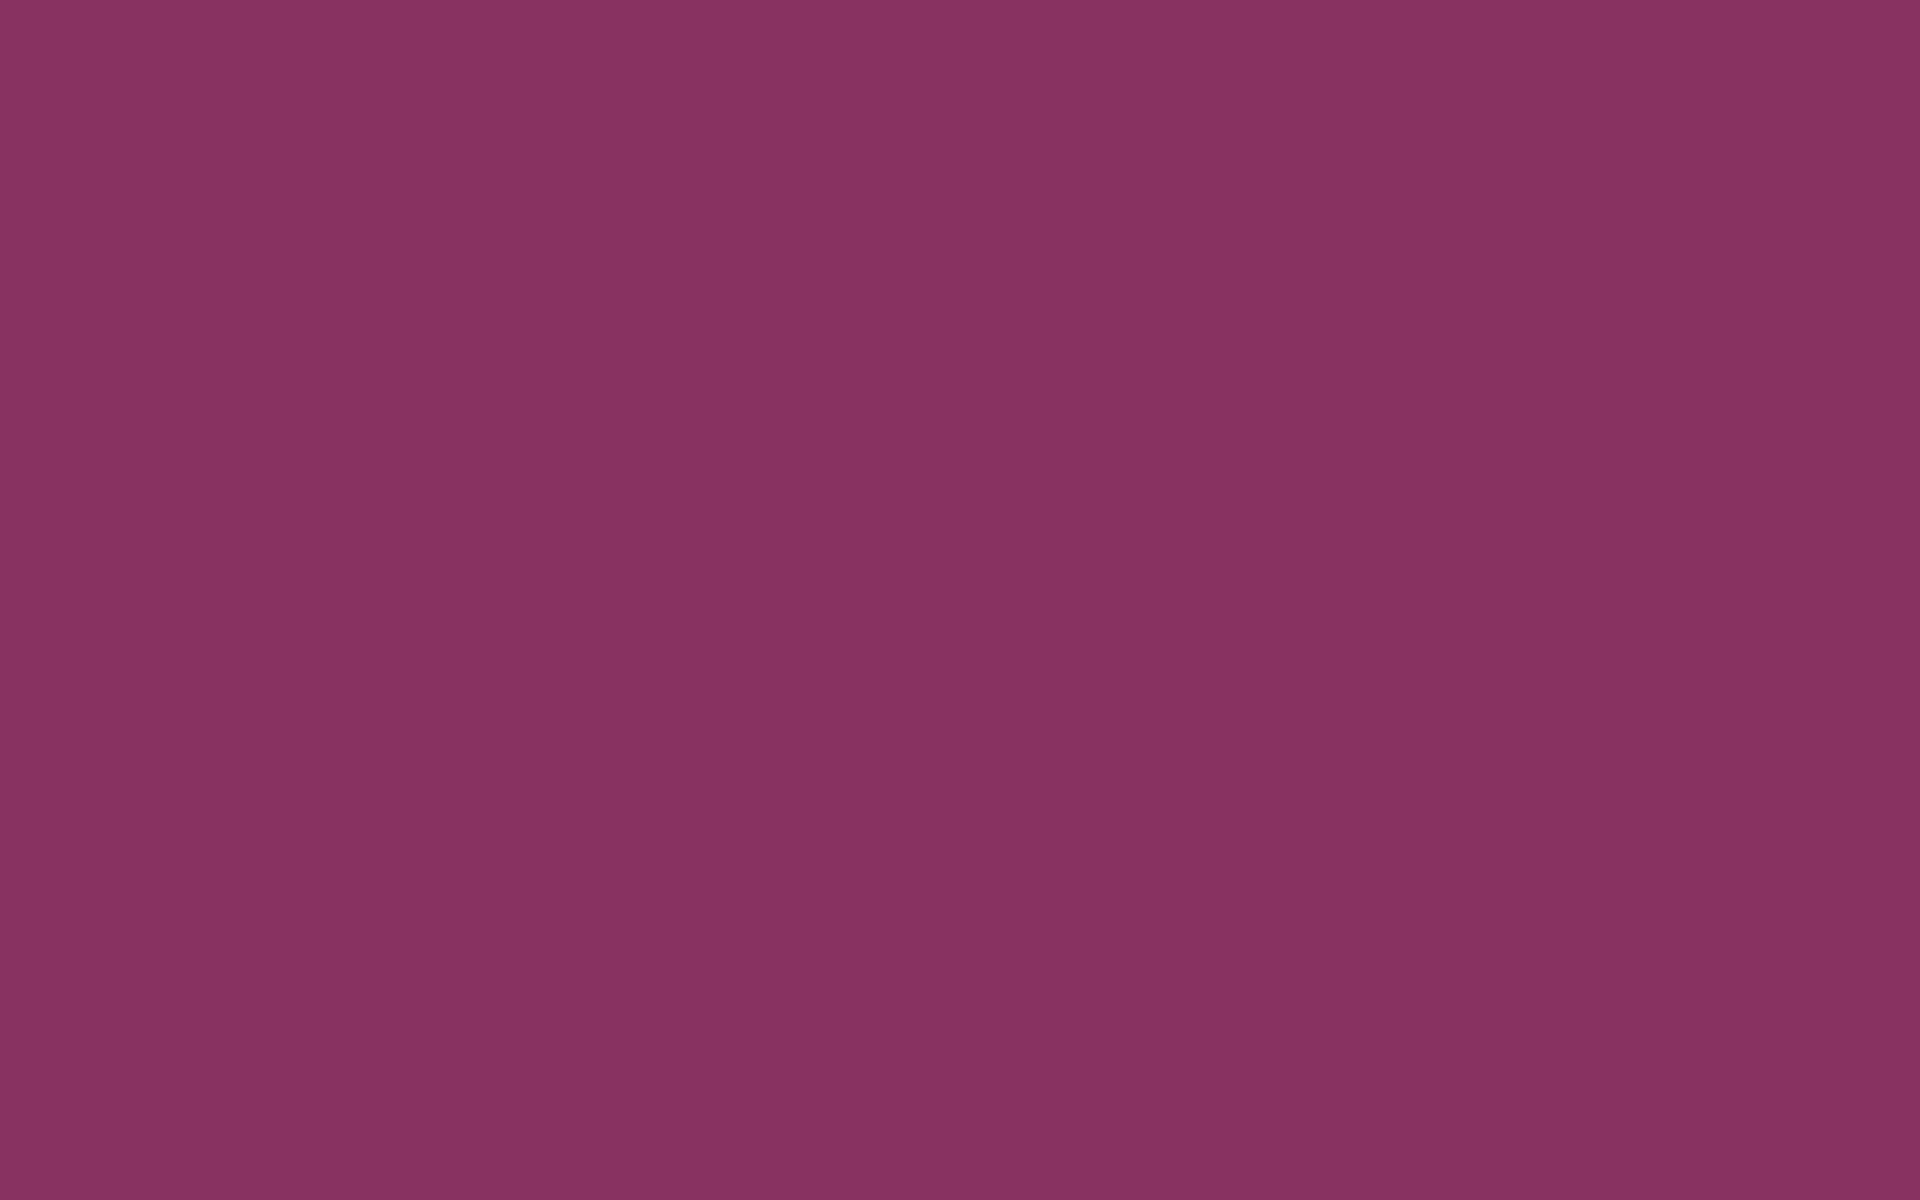 1920x1200 Boysenberry Solid Color Background